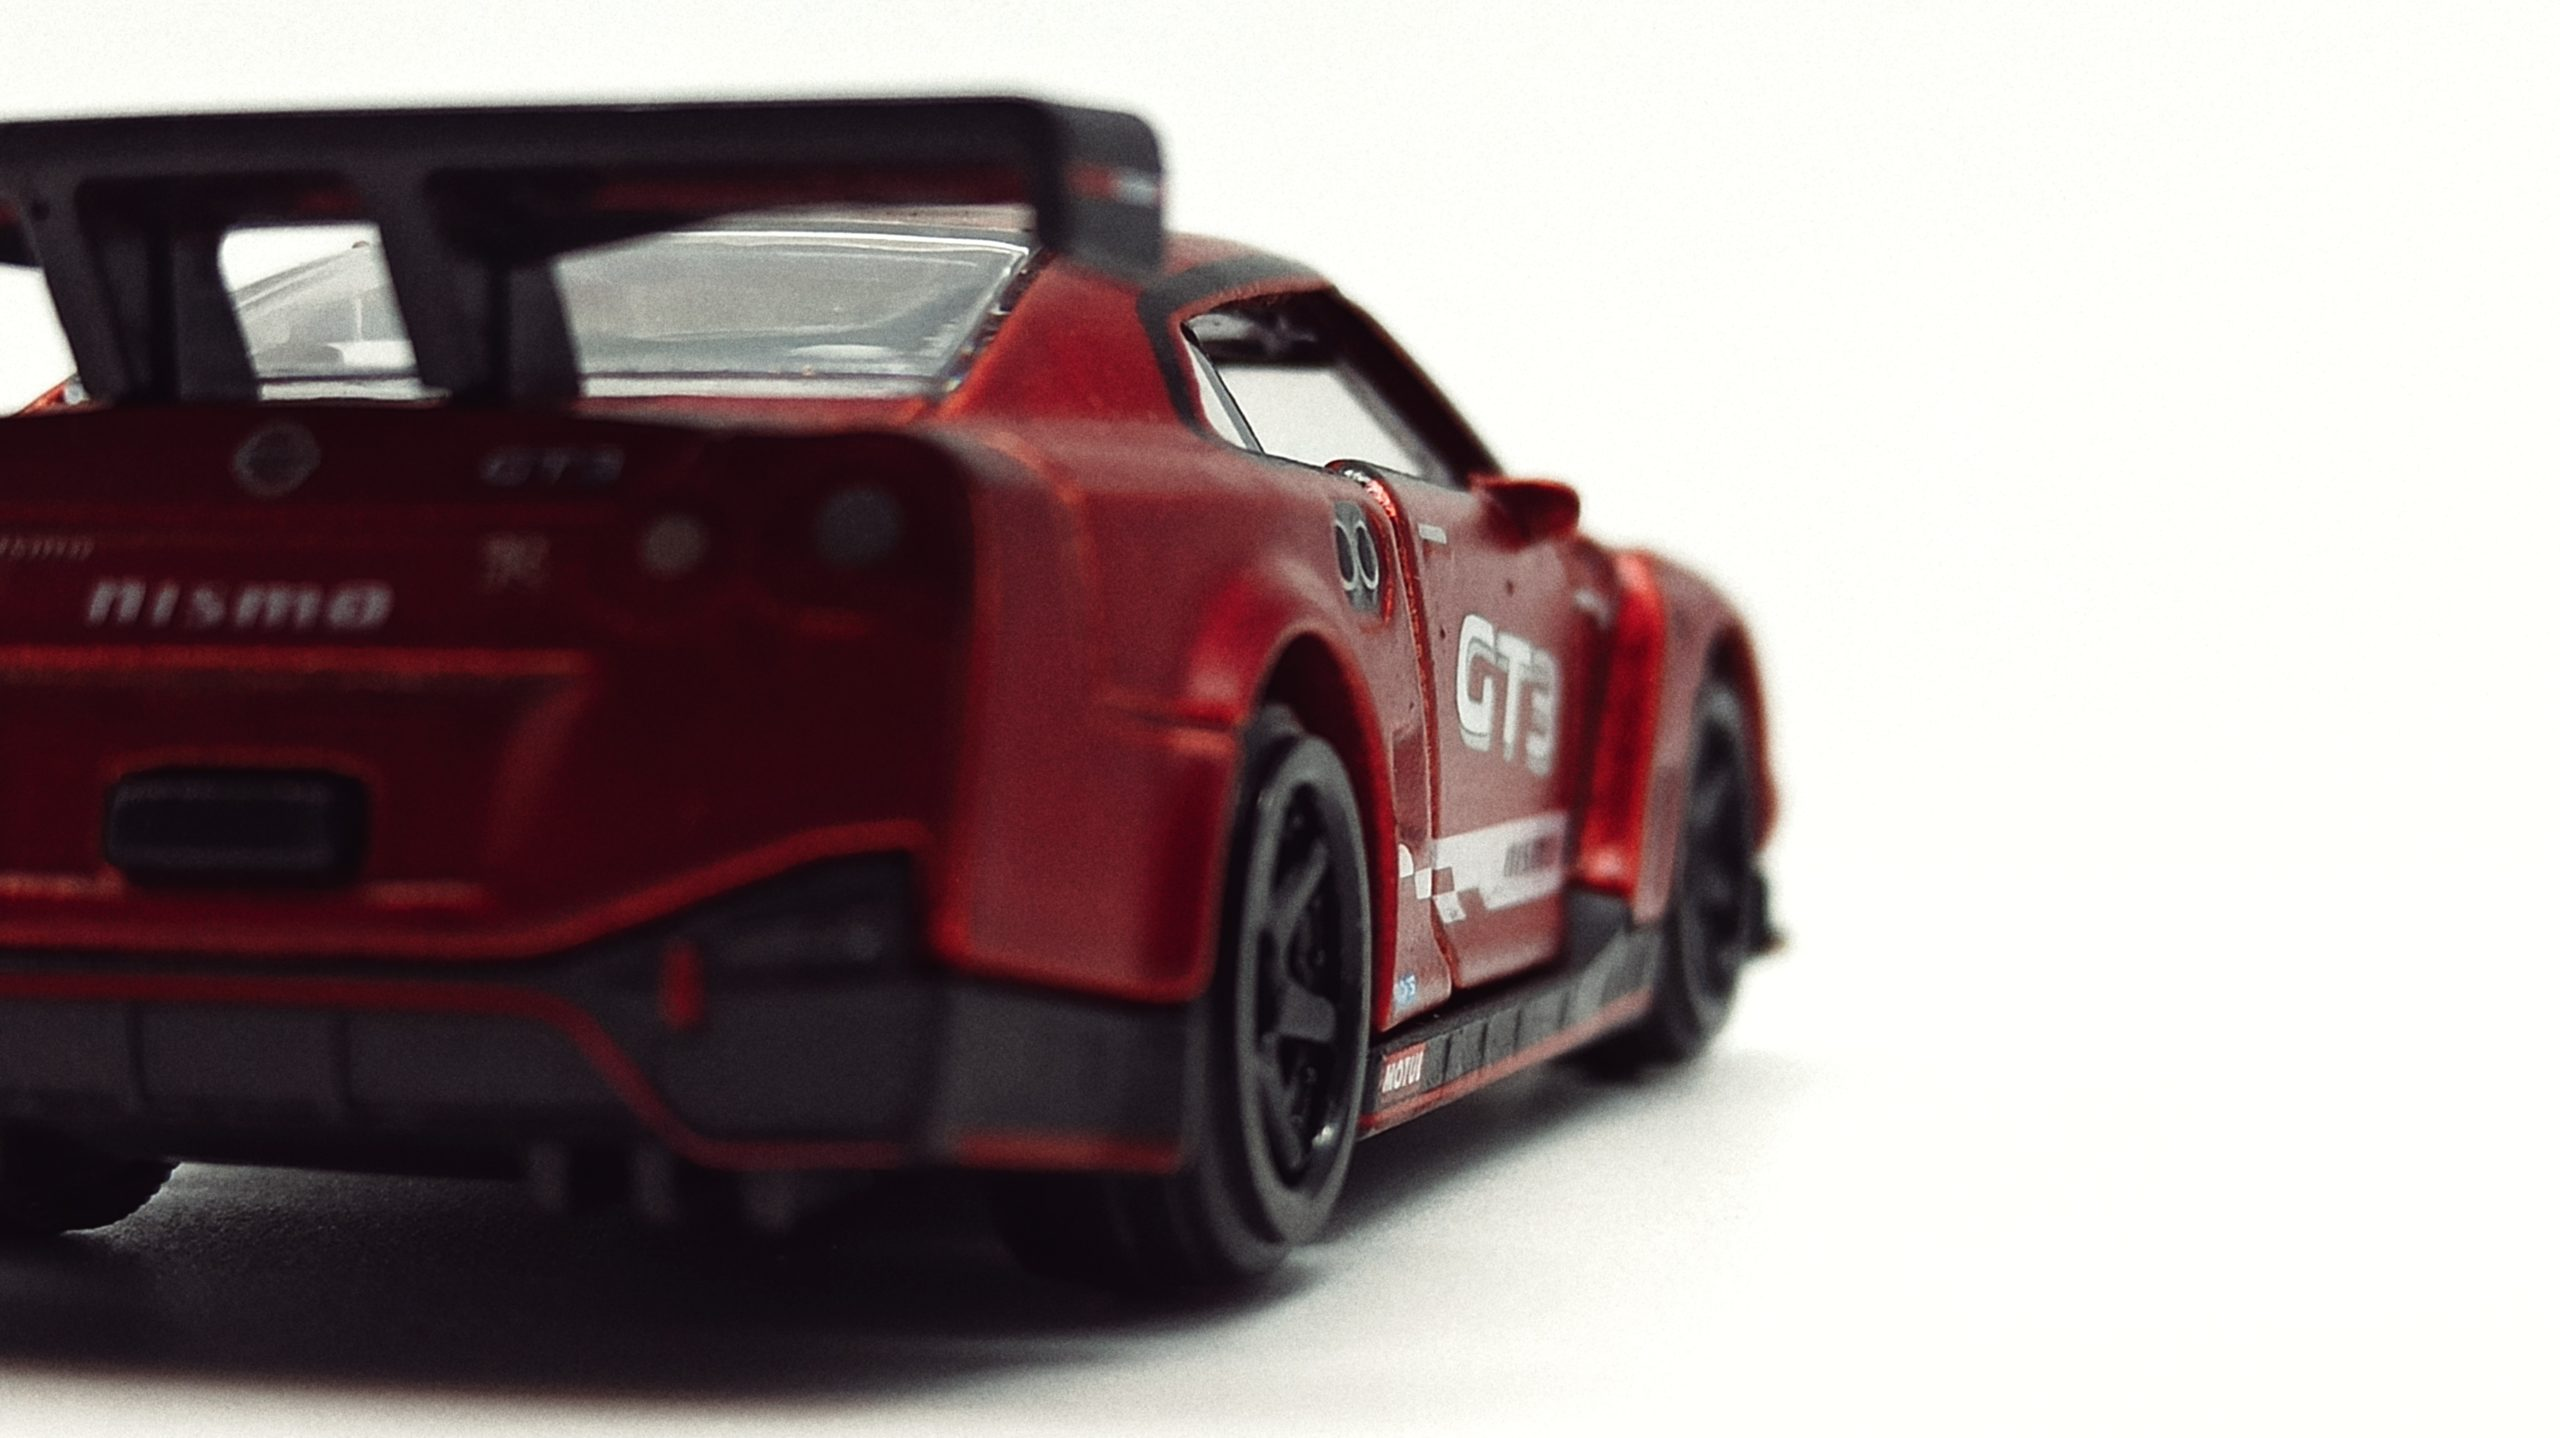 Majorette Nissan GT-R Nismo GT3 (214H) 2021 Limited Edition Series 7 metallic red back angle